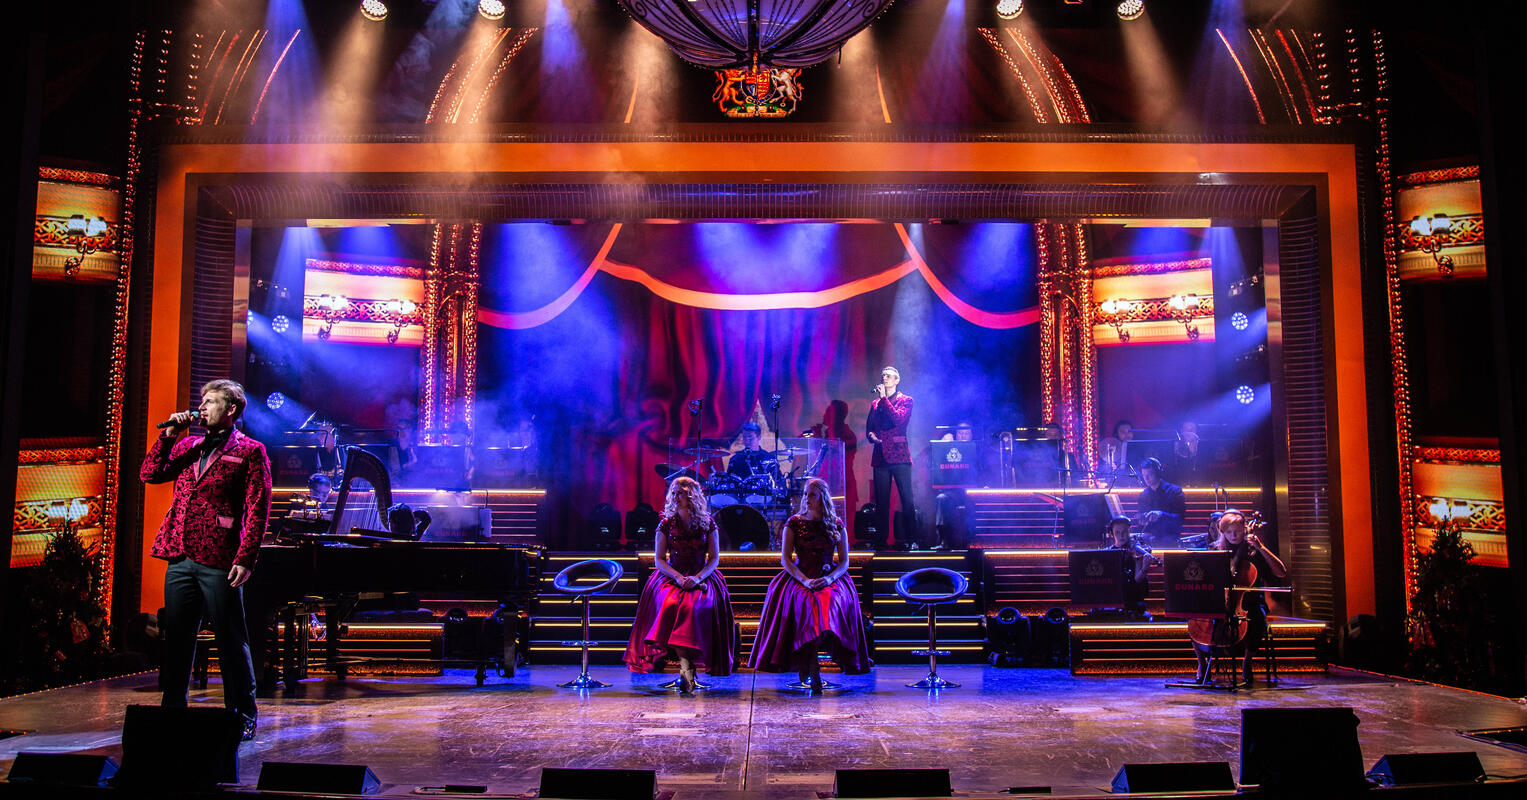 Photograph from Symphony - lighting design by Archer